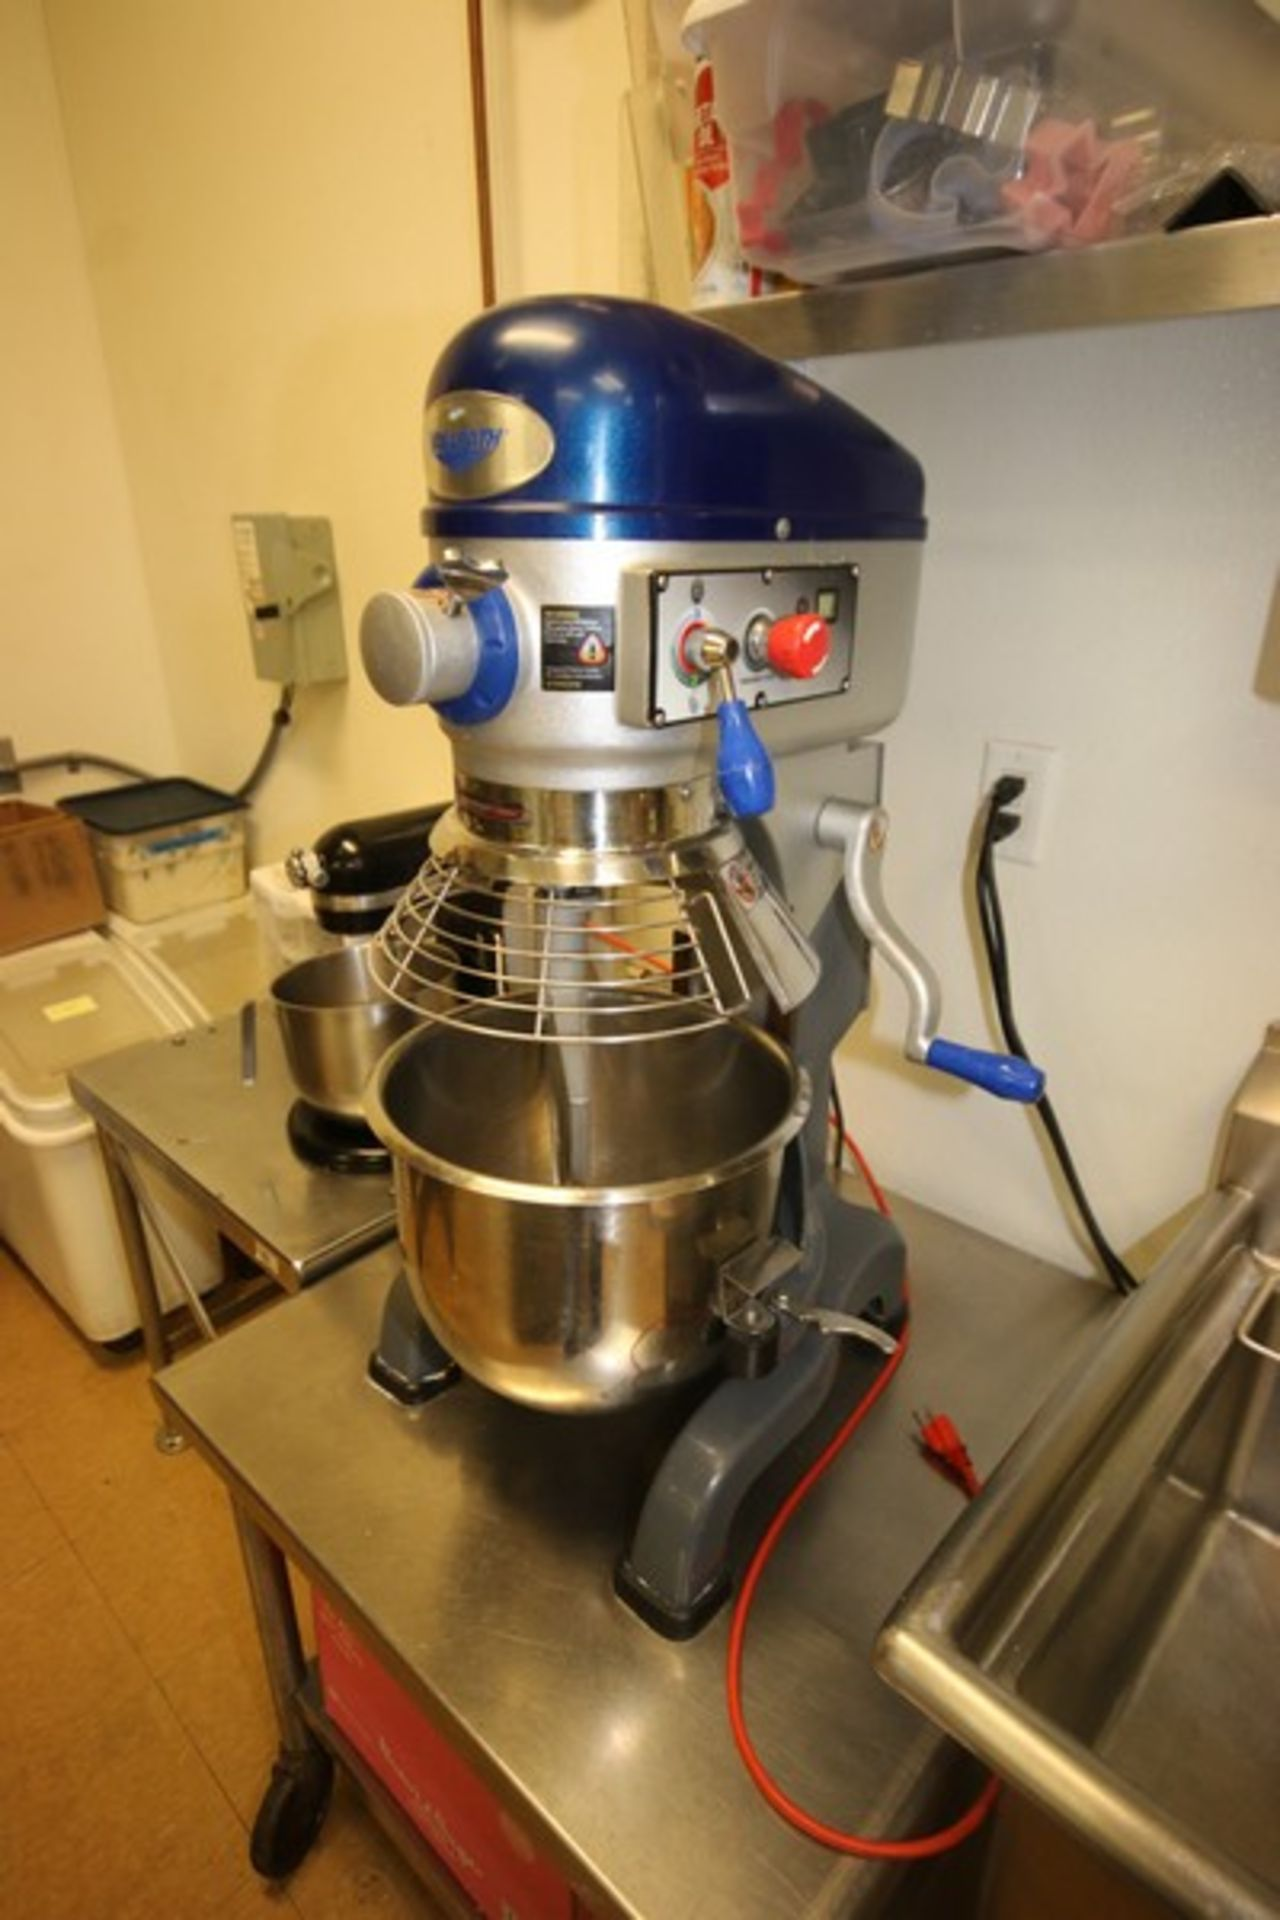 Vollrath Mixer, M/N MIX1020, S/N B42-00181983-0210, with 1/2 hp Motor, 110 Volts, 1 Phase, with S/ - Image 3 of 9